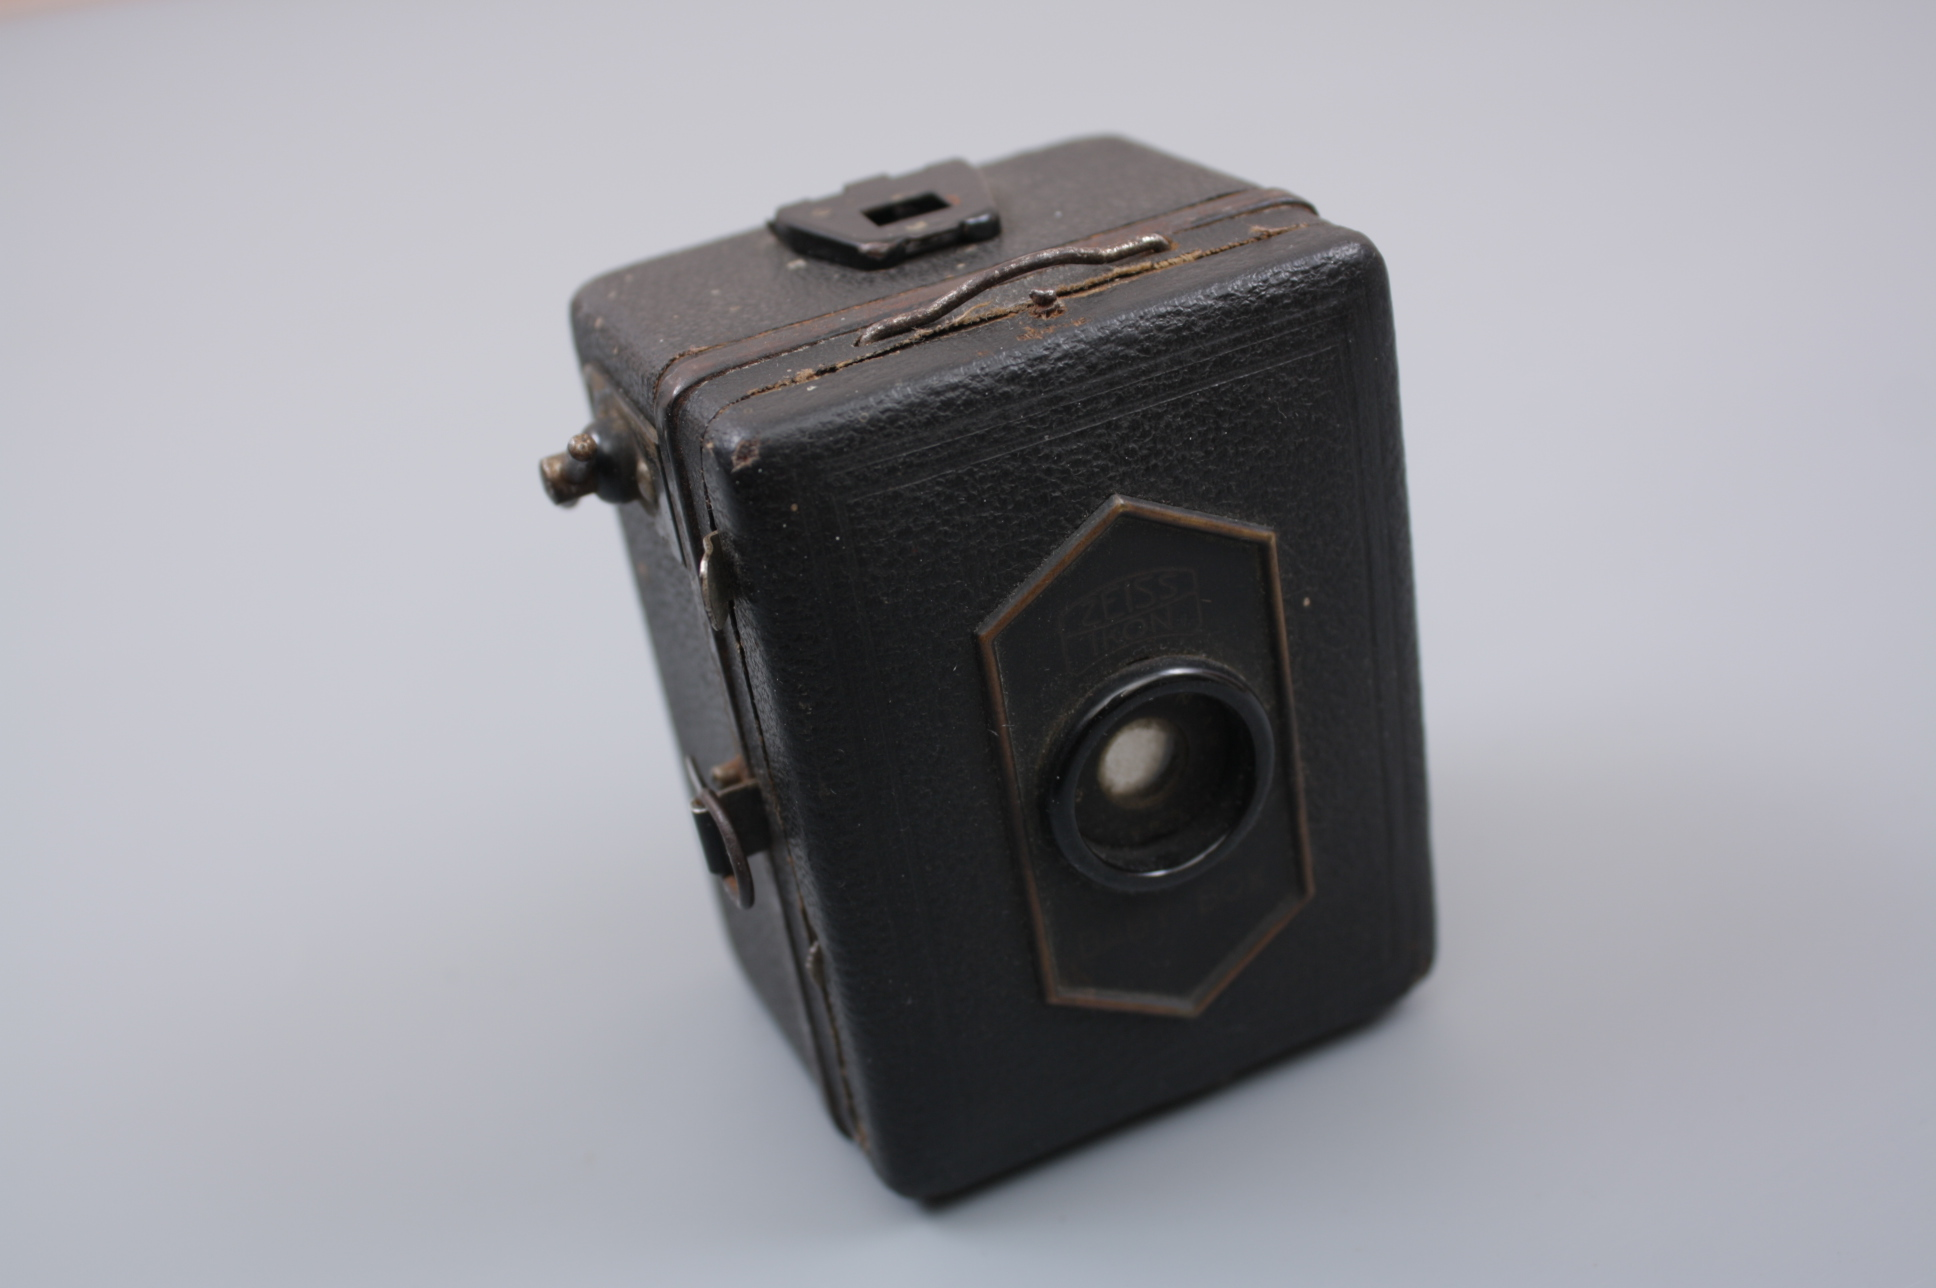 Фотоаппарат ZEISS IKON Baby Box 1920-е гг., Германия.